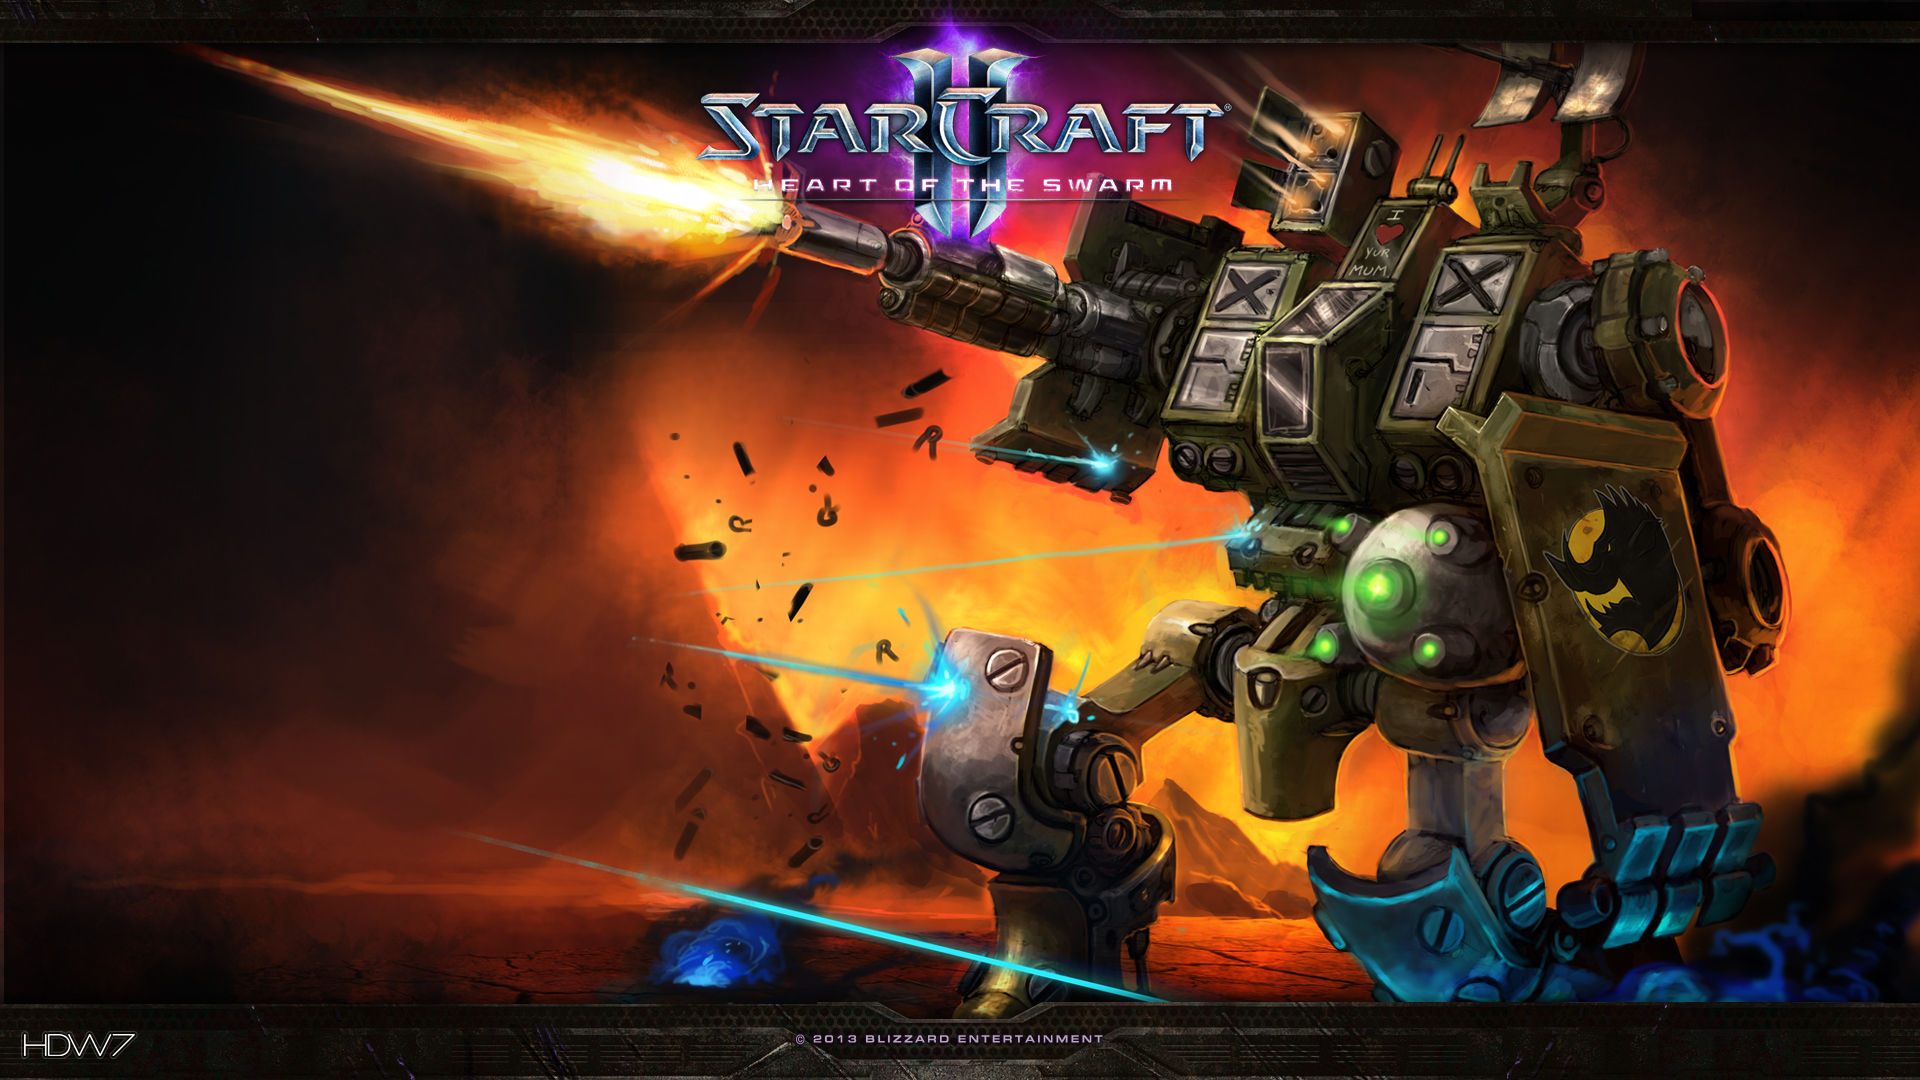 starcraft 2 heart of the swarm command performance widescreen hd wallpaper